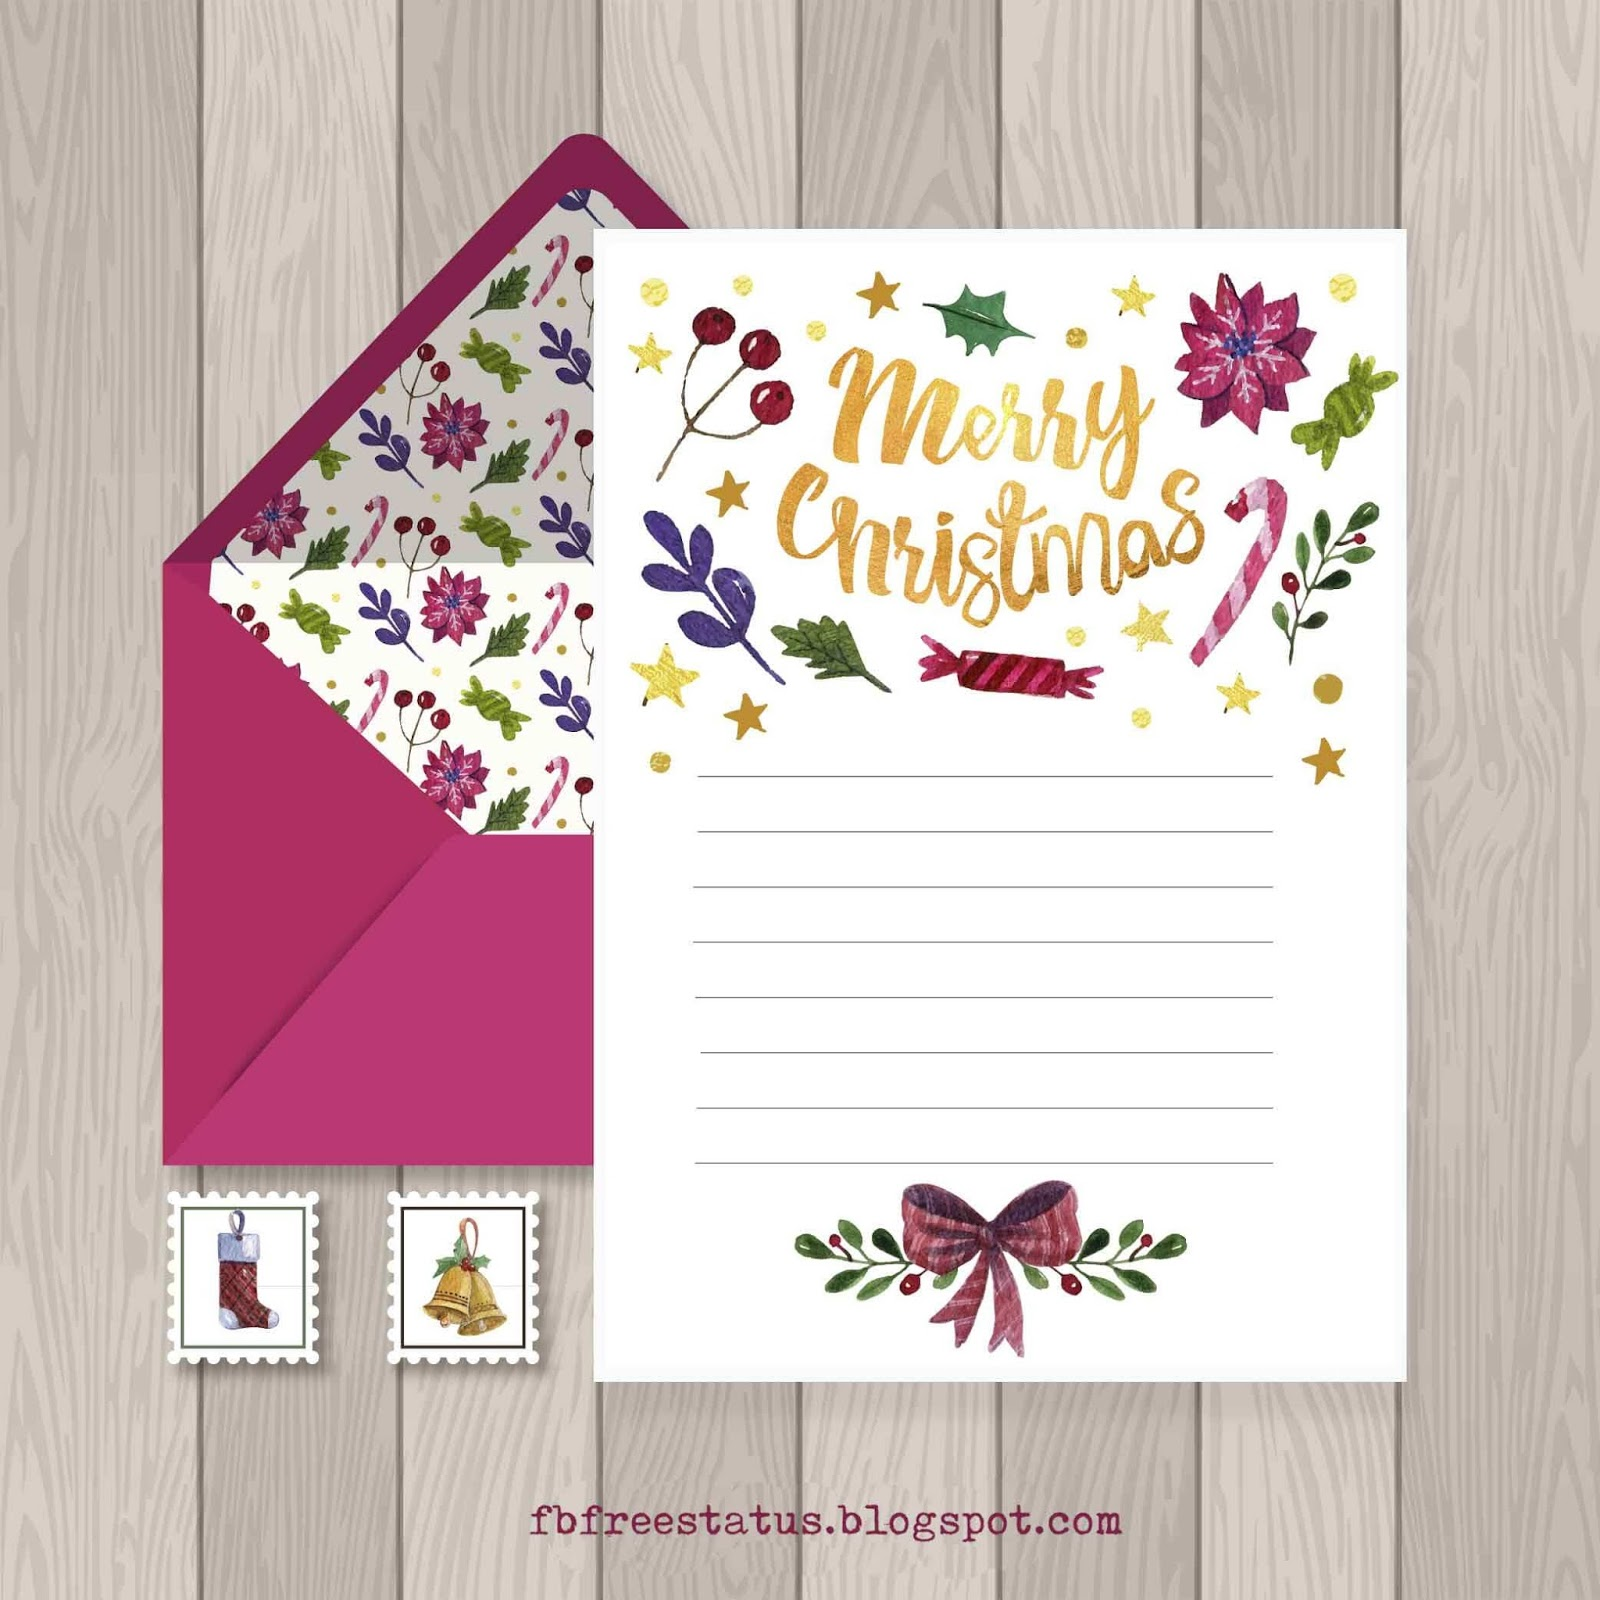 Cute Christmas Card Ideas